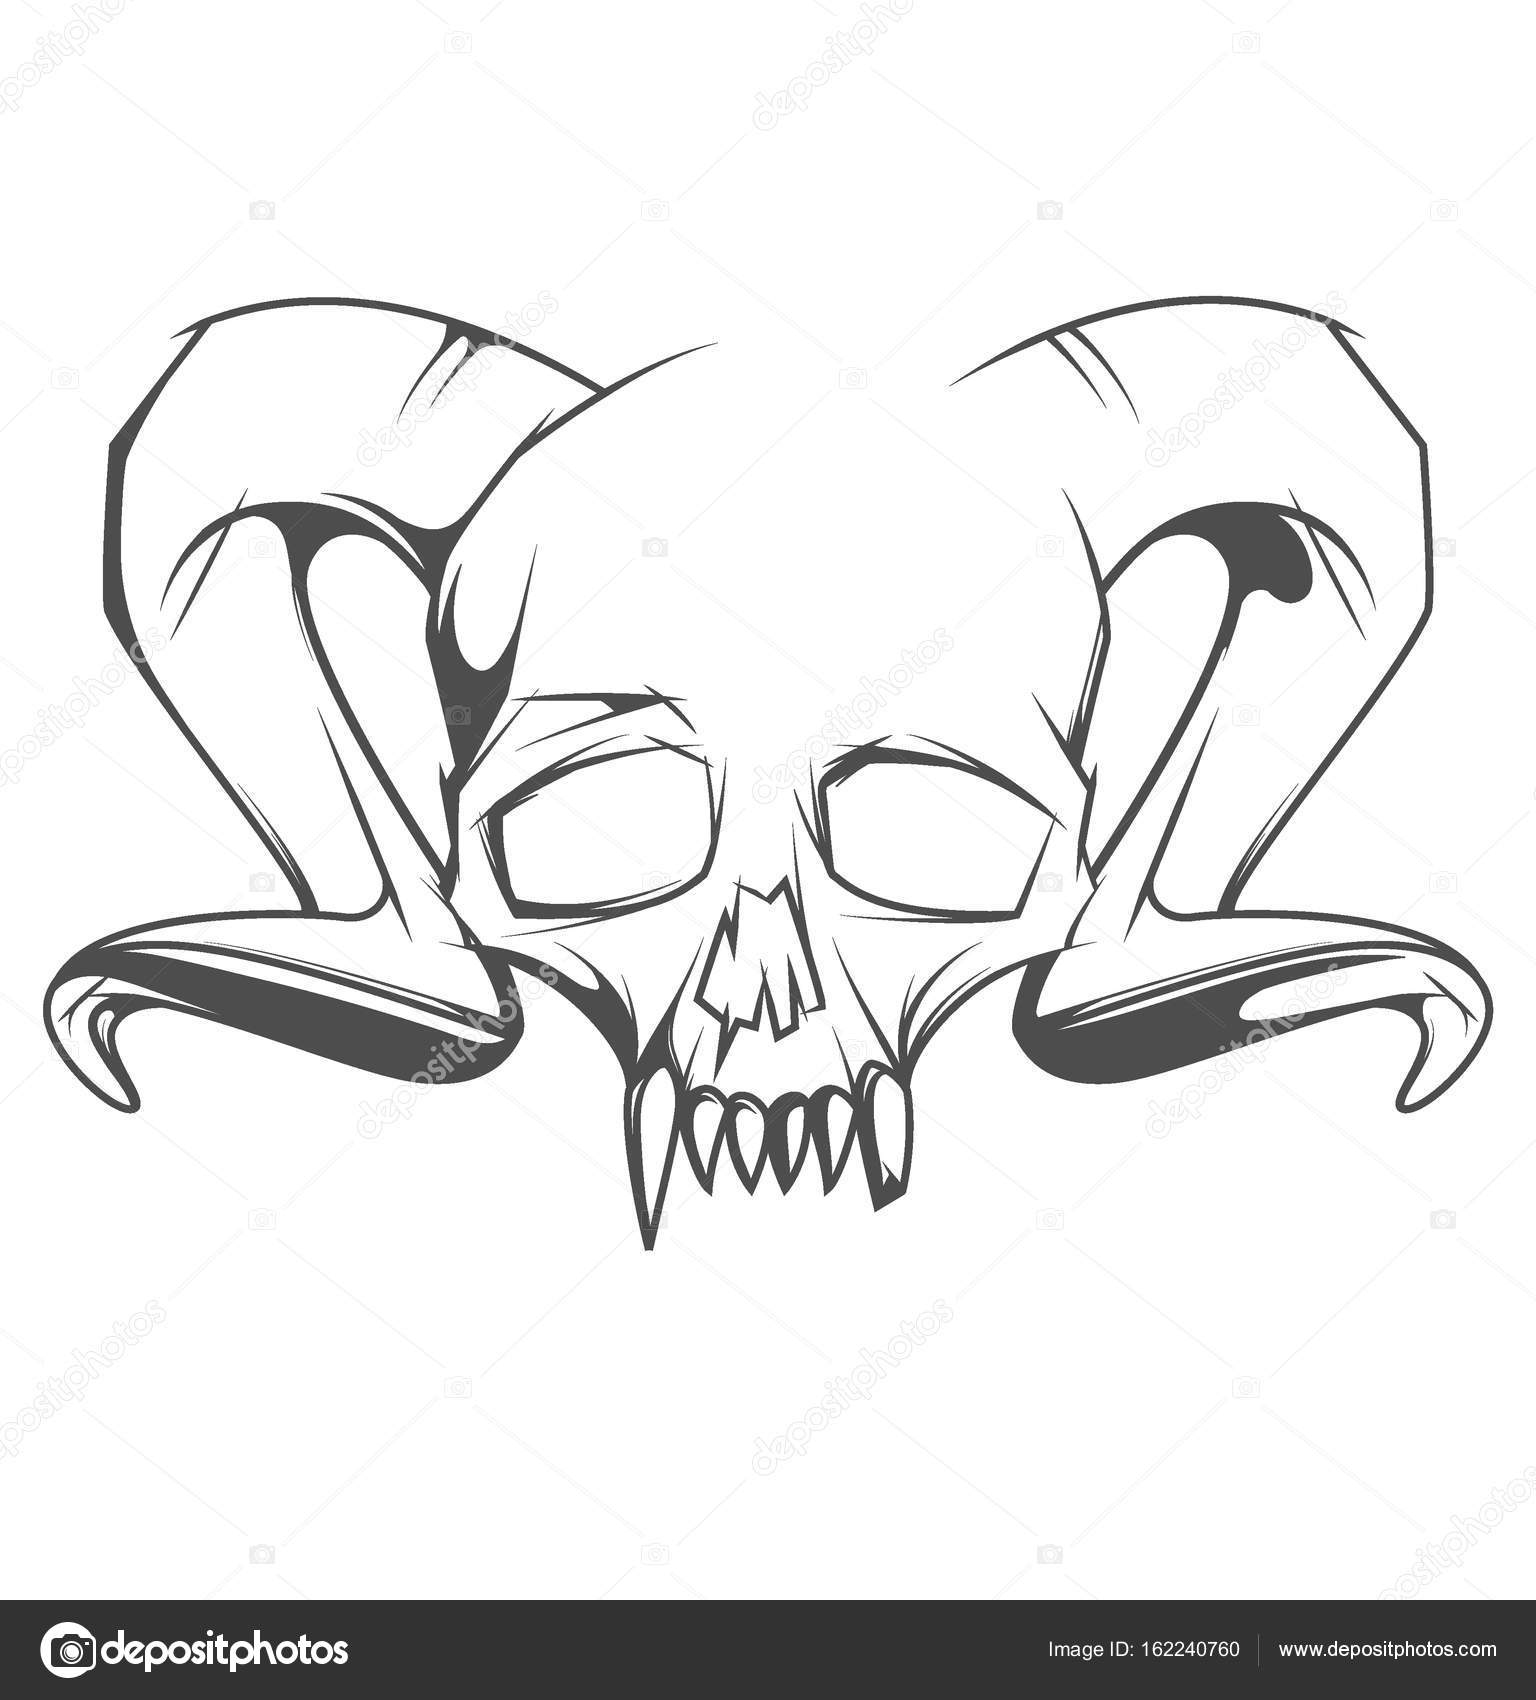 1536x1700 Human Skull With Horns And Sharp Teeth Stock Vector